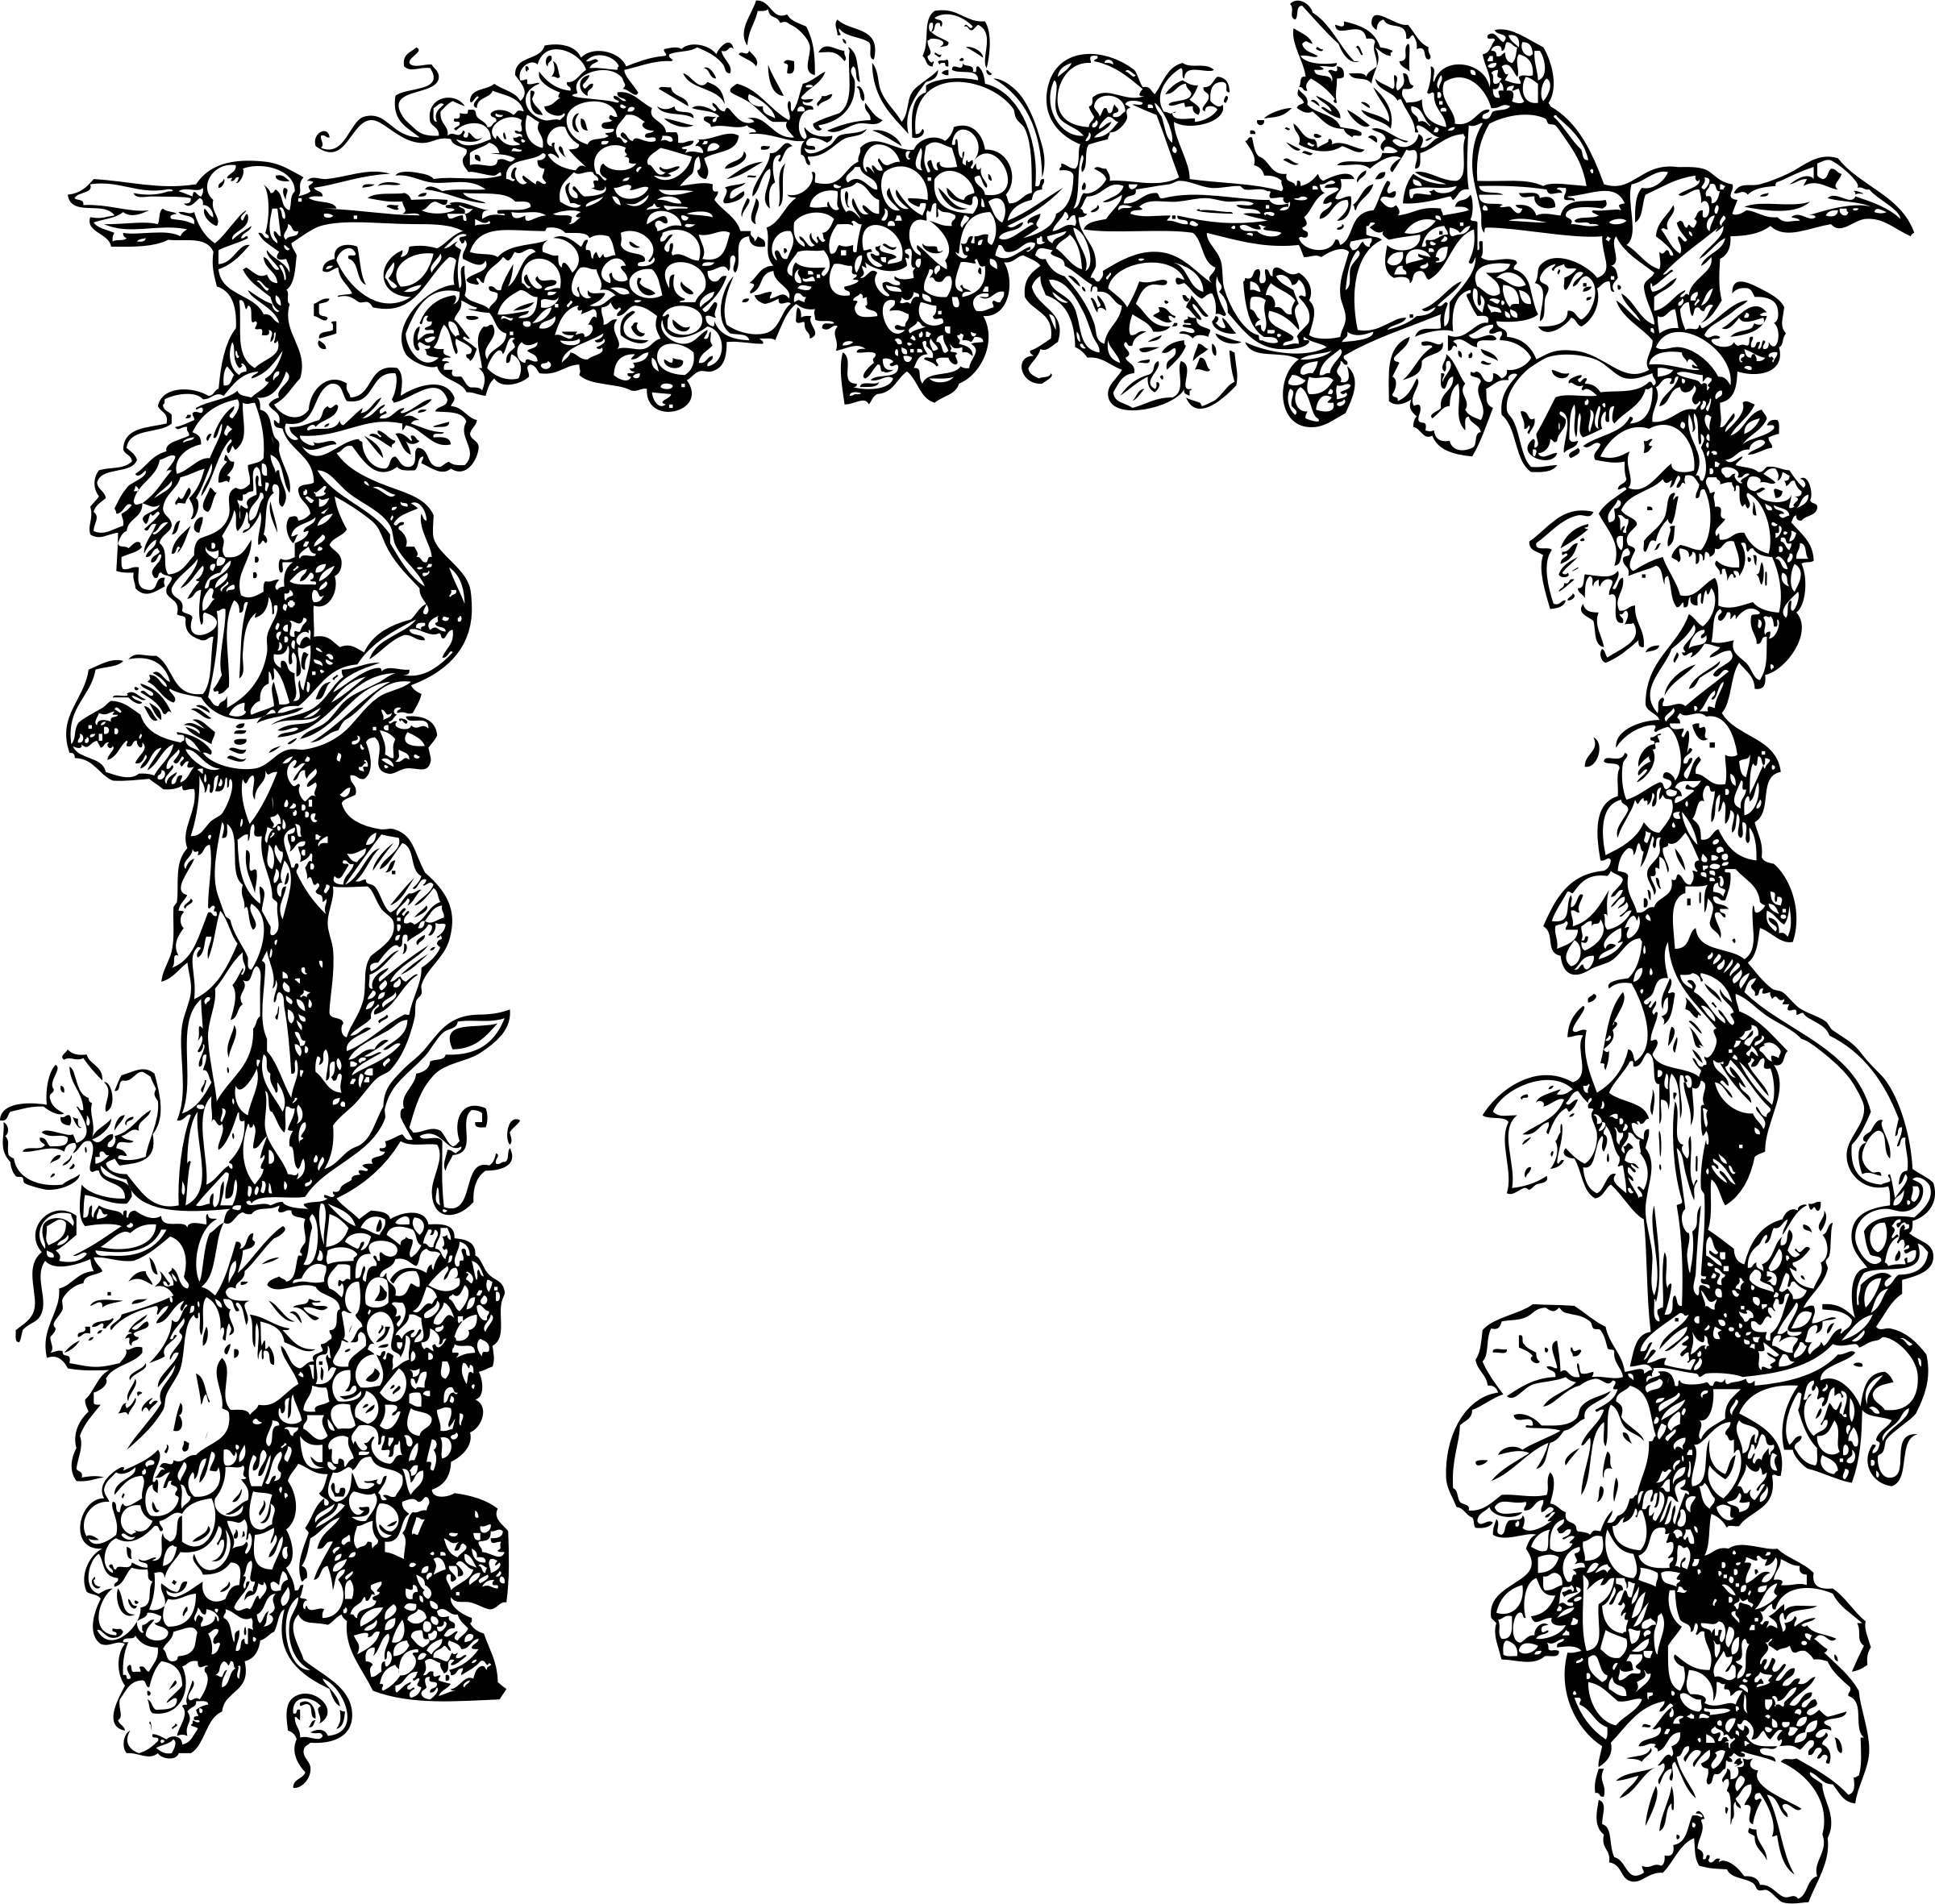 Transparent png stickpng frame. Grapevine clipart